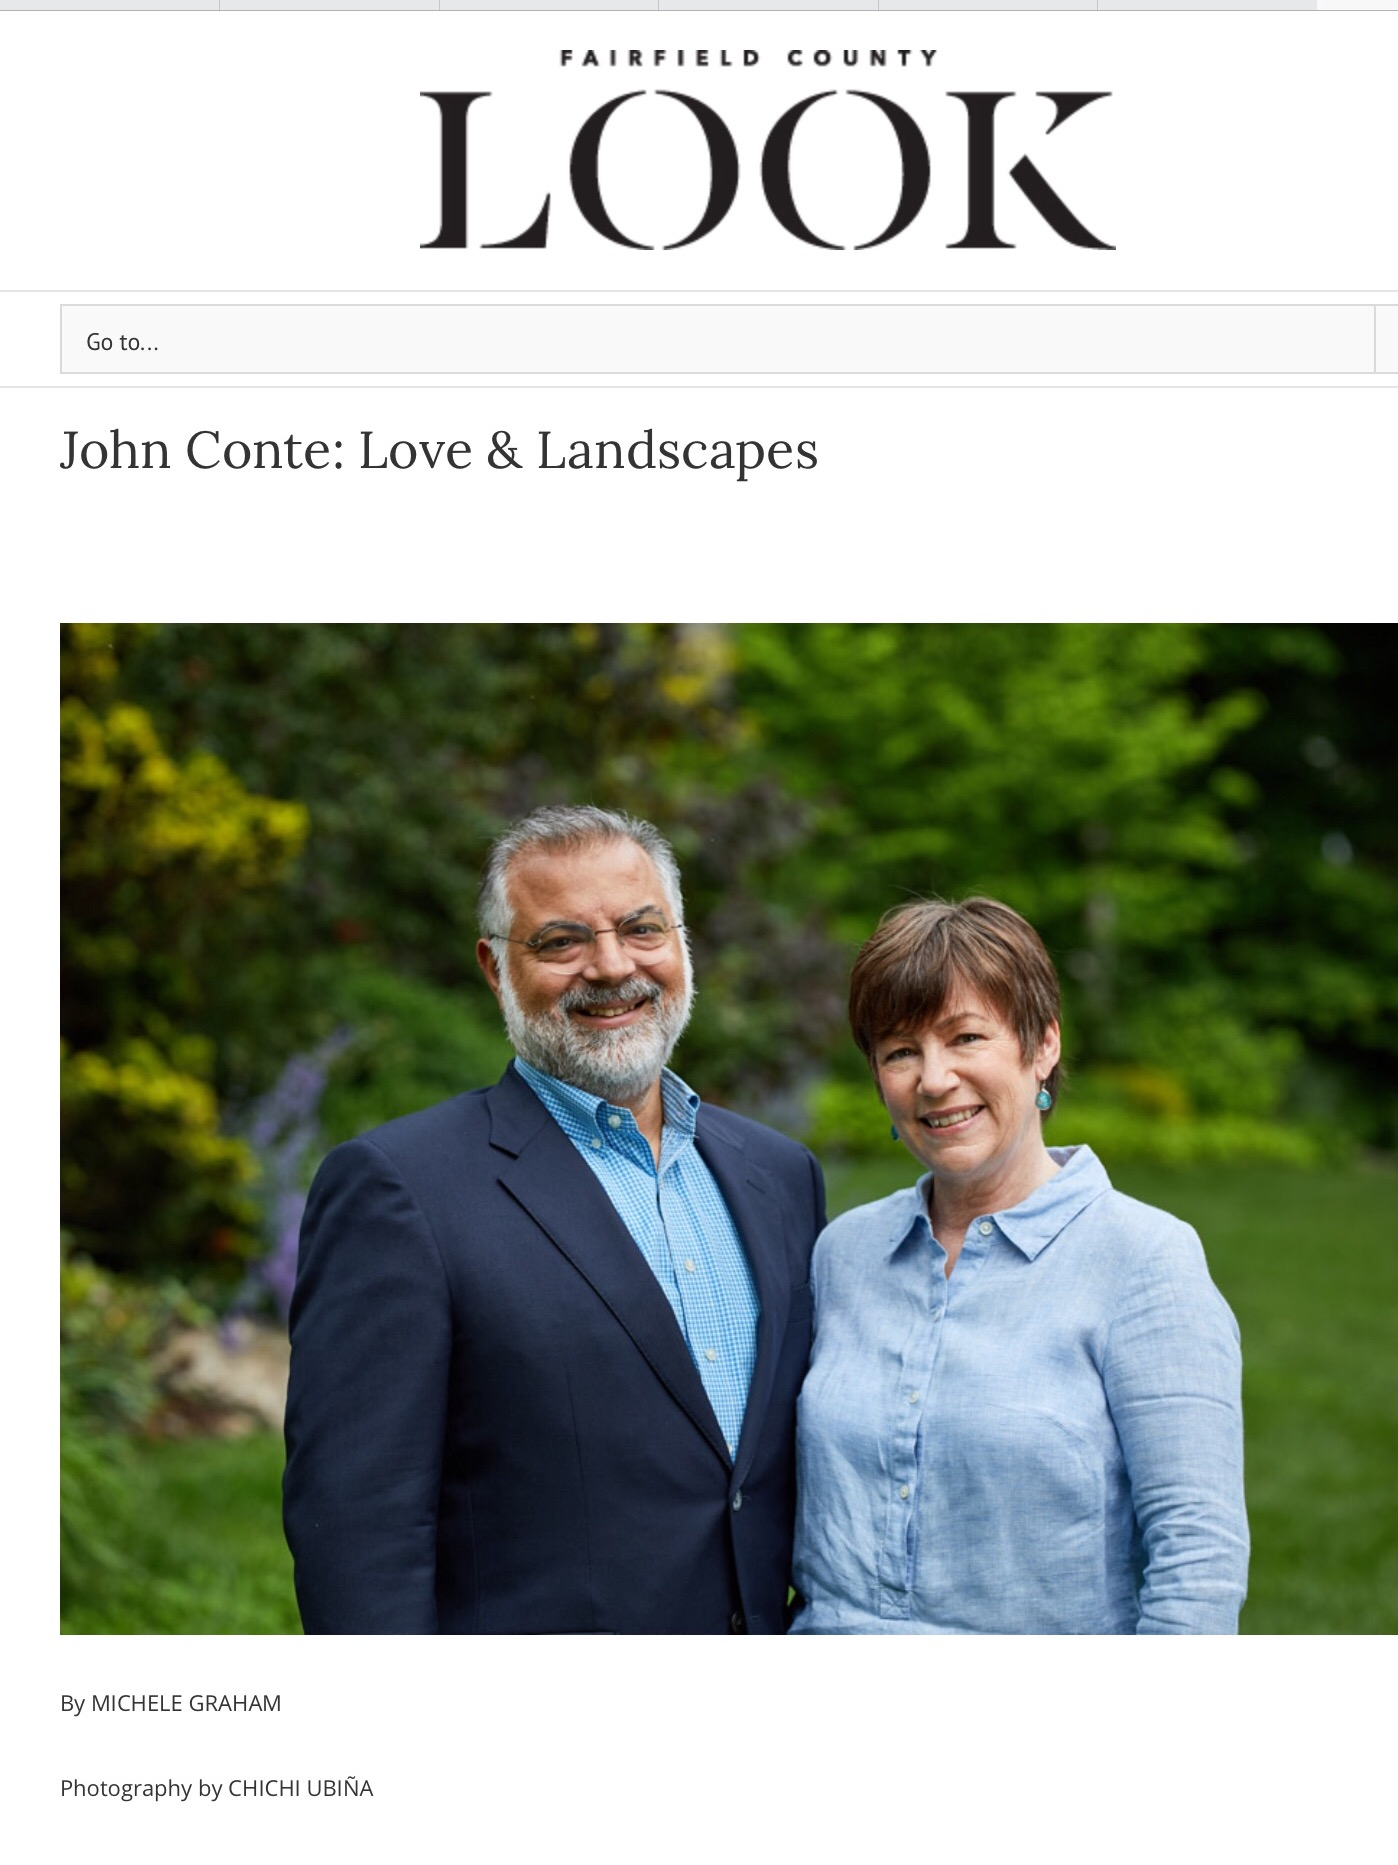 for more information visit  http://fairfieldcountylook.com/john-conte-love-landscapes/